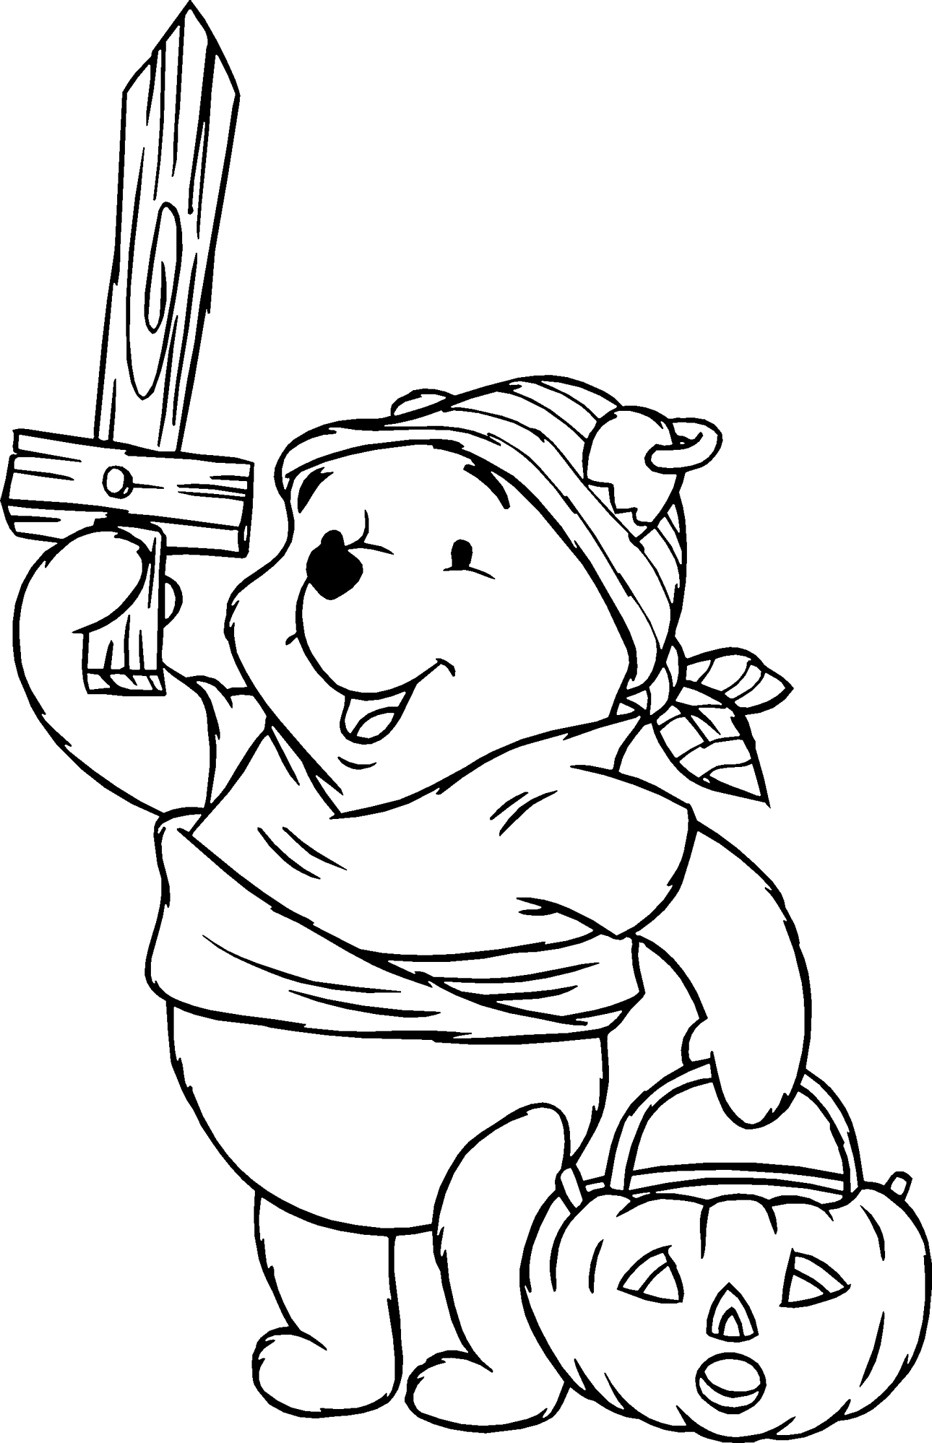 Children Coloring Page  Free Printable Winnie The Pooh Coloring Pages For Kids